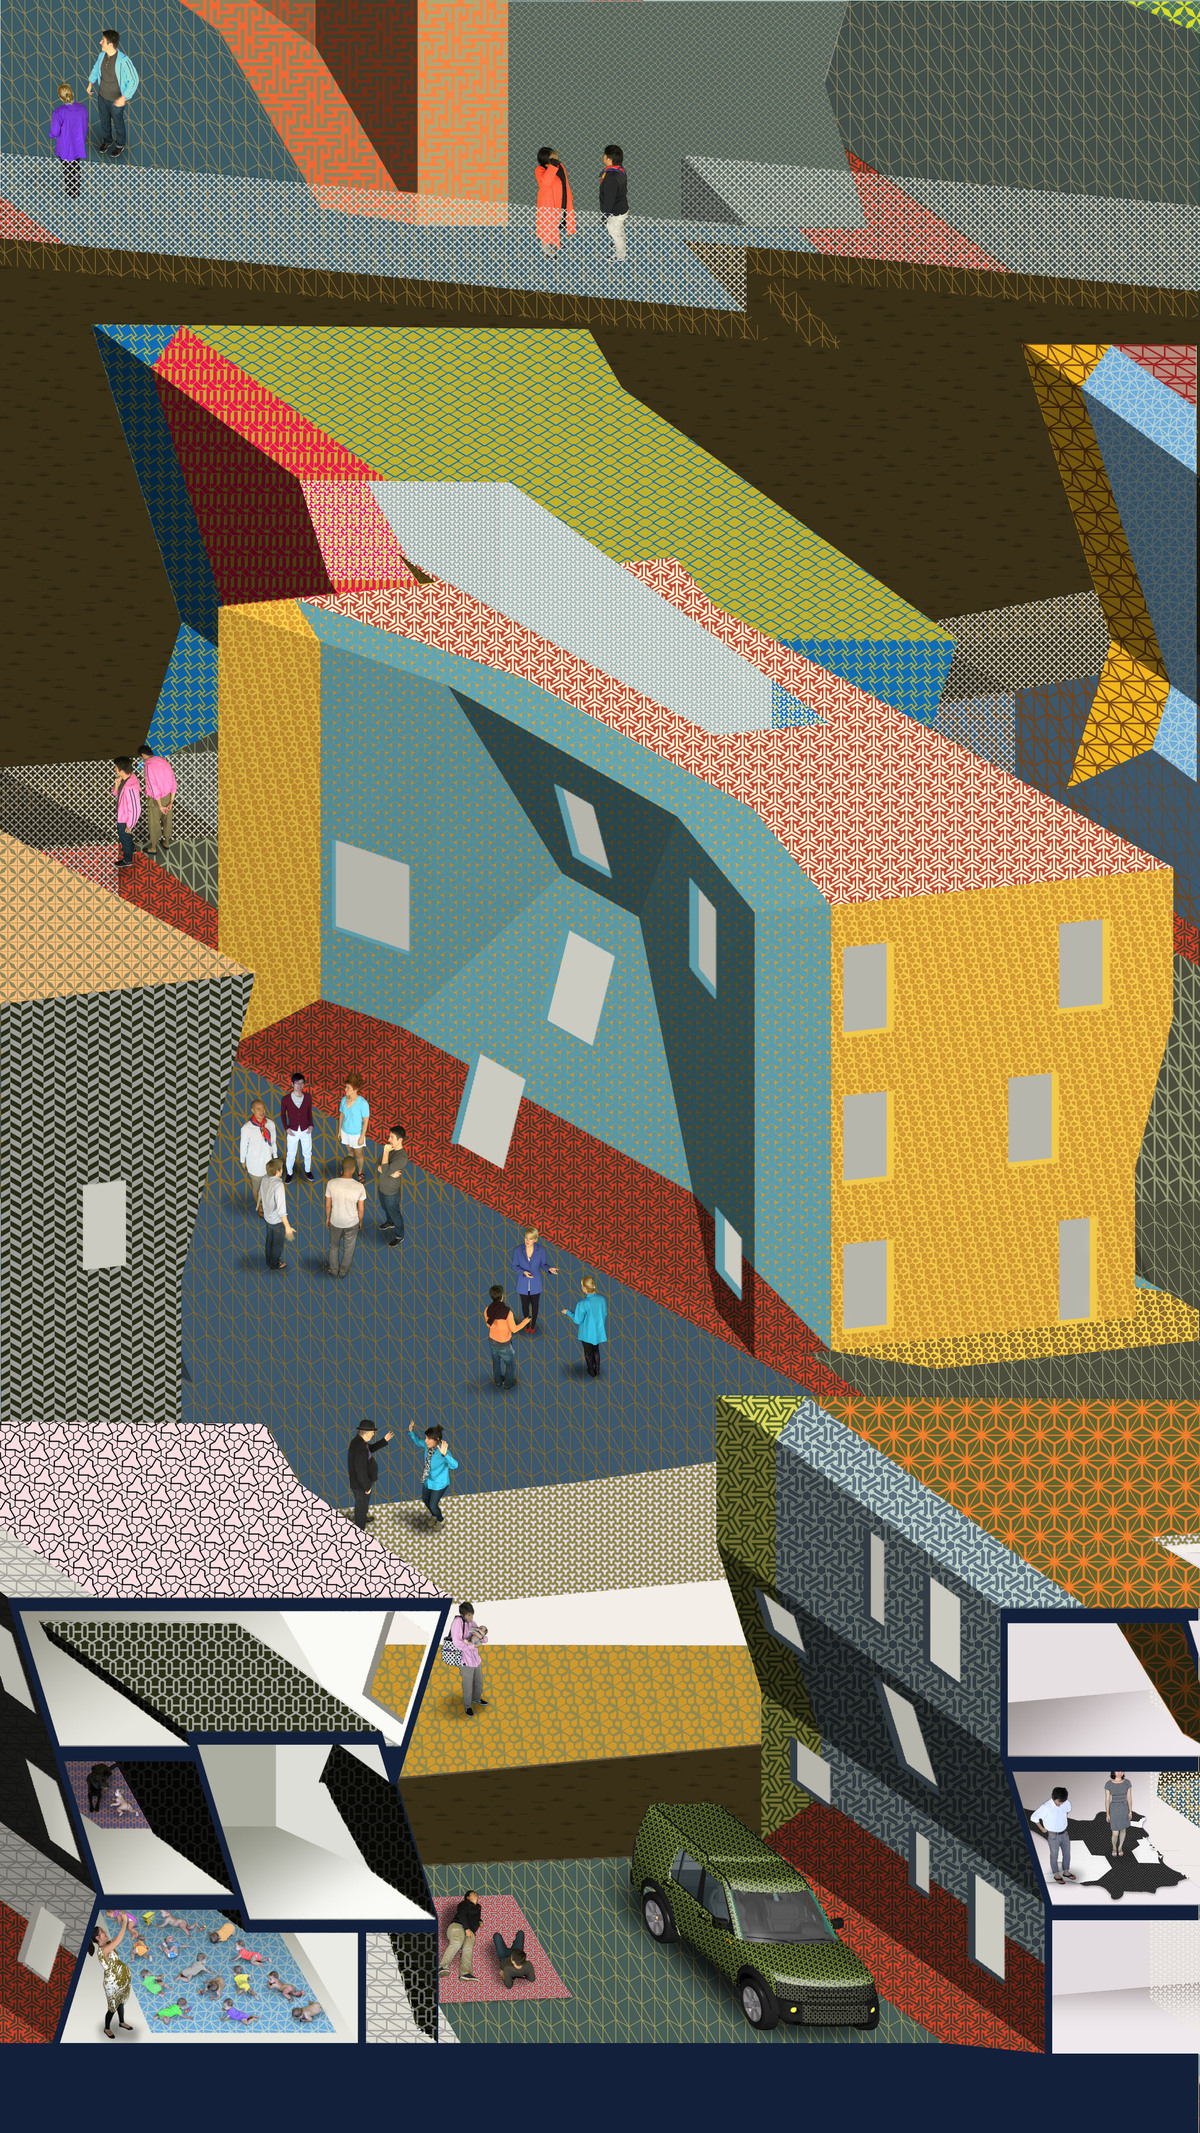 Still from View of Life in the New Development, an animation produced as part of Zago Architecture's Property with Properties project. Image courtesy Zago Architecture.